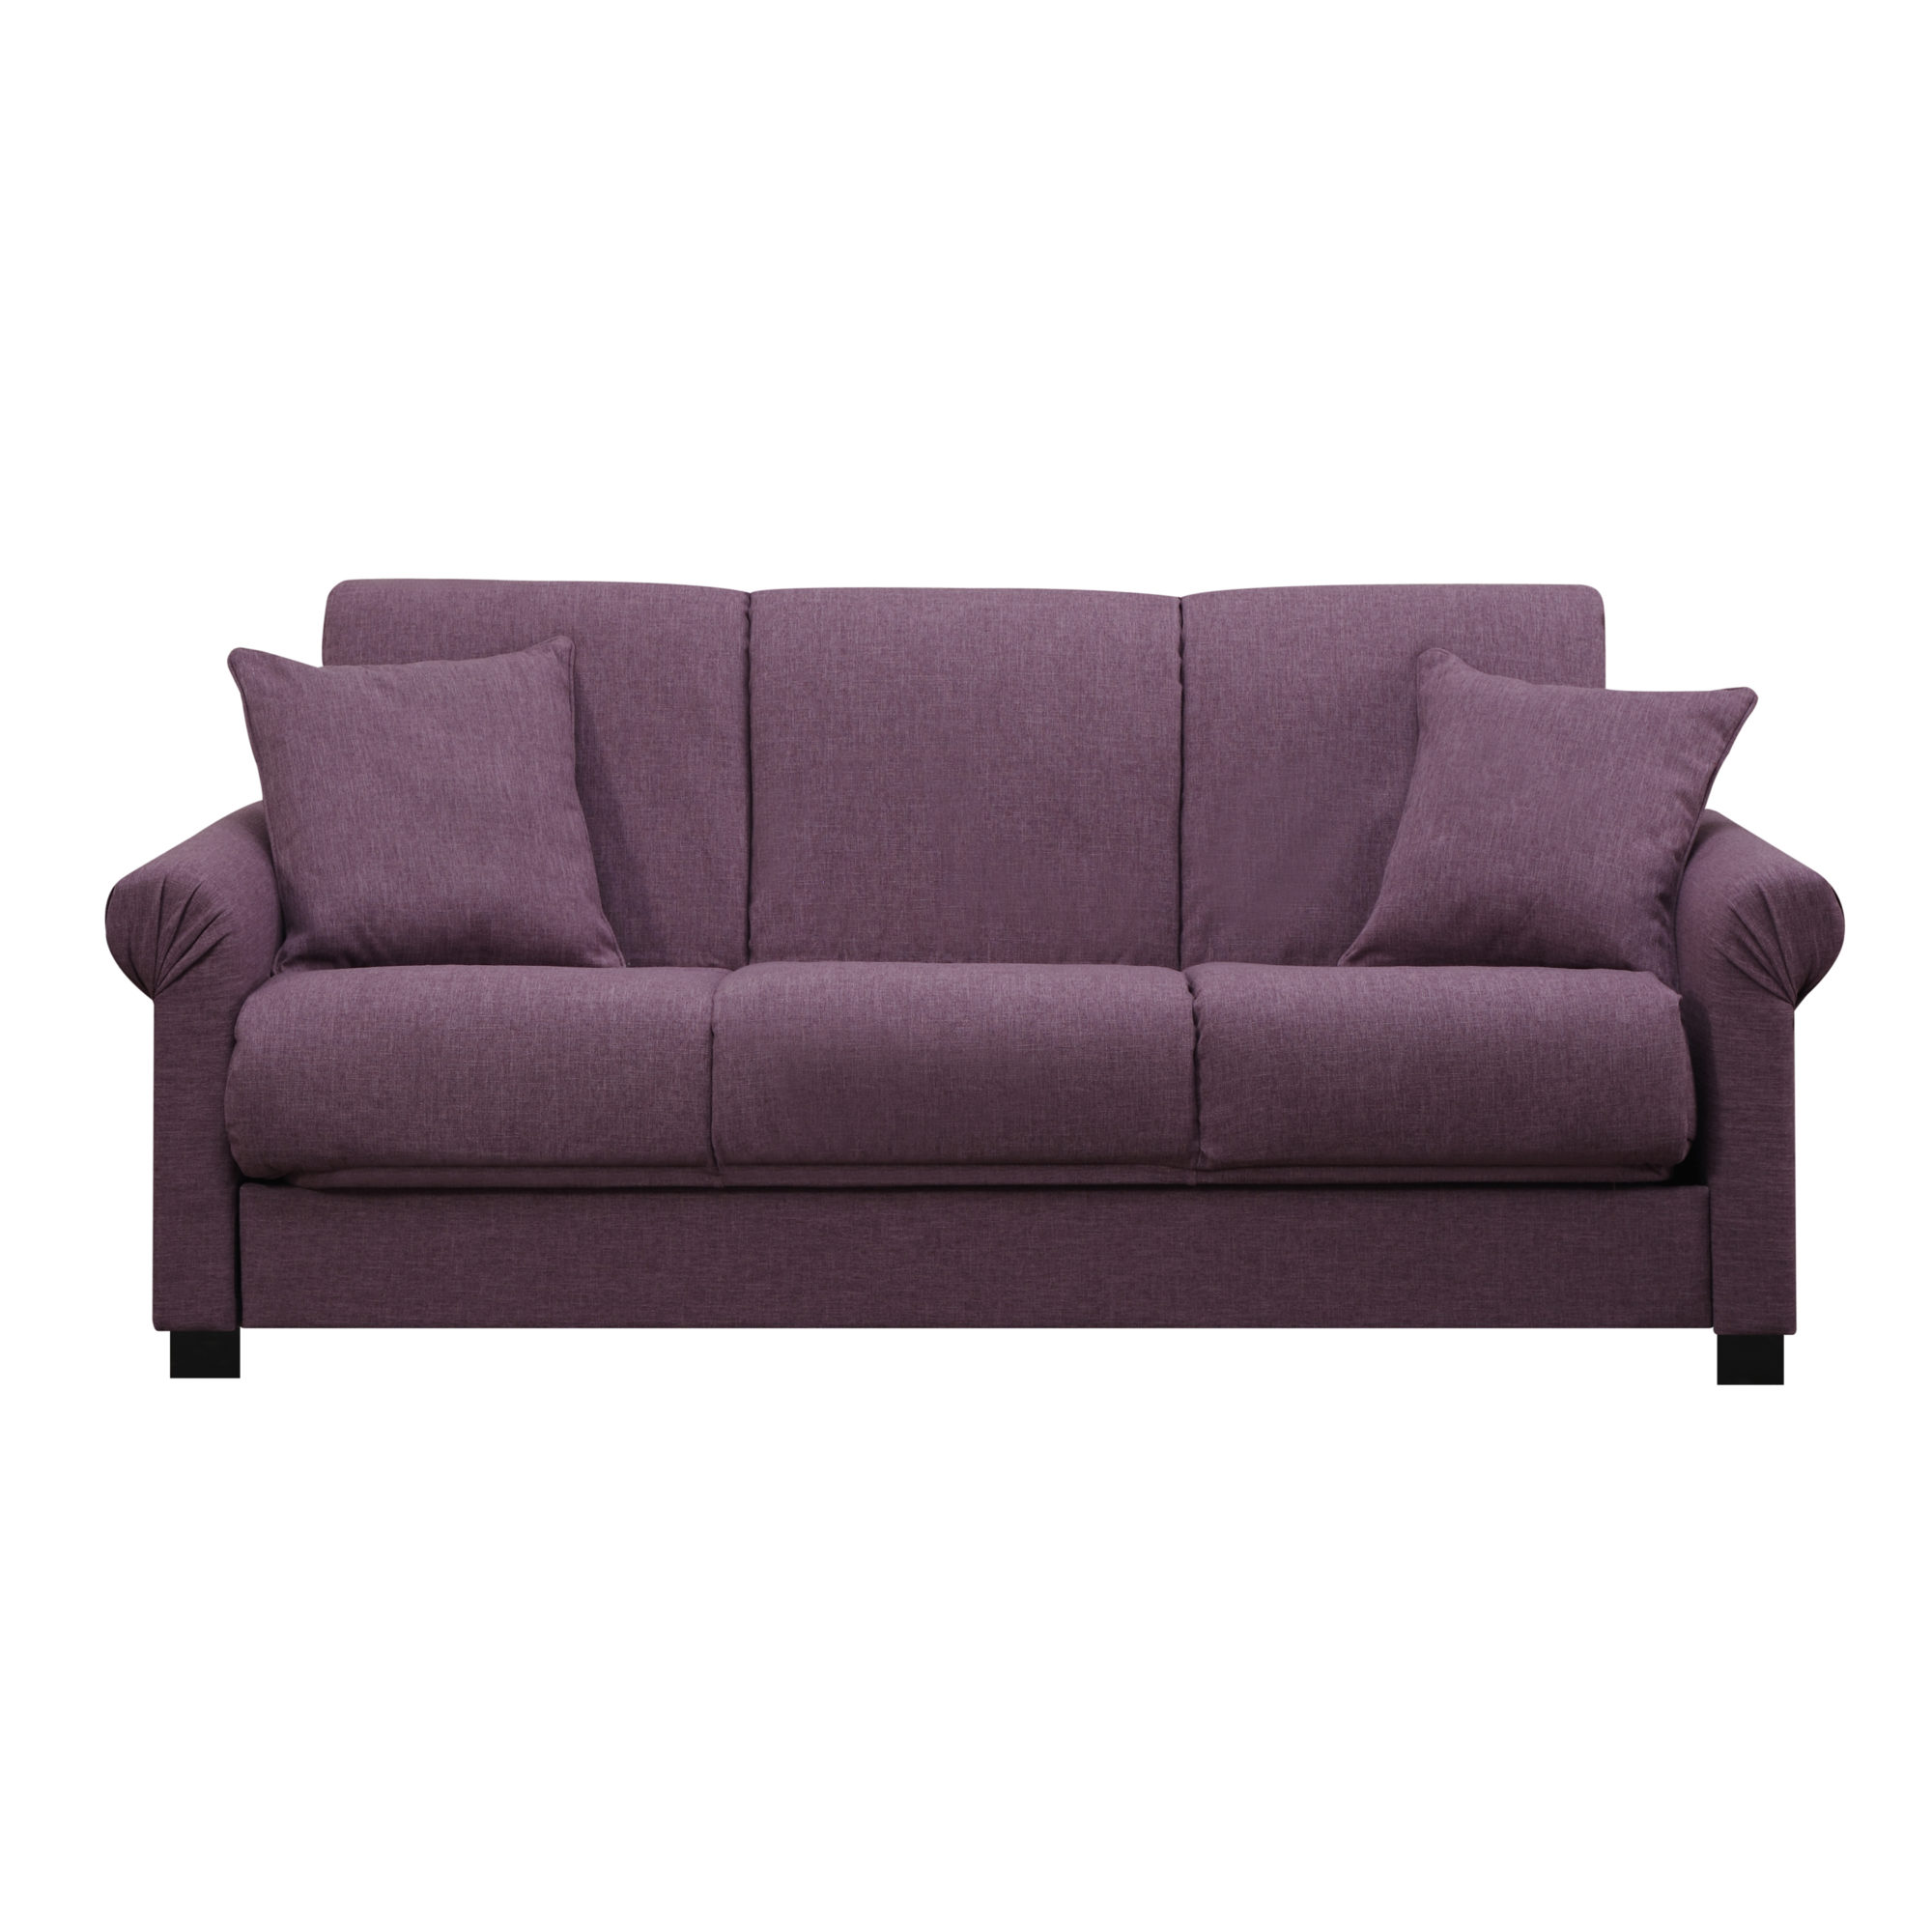 Sectional sleeper sofa ikea